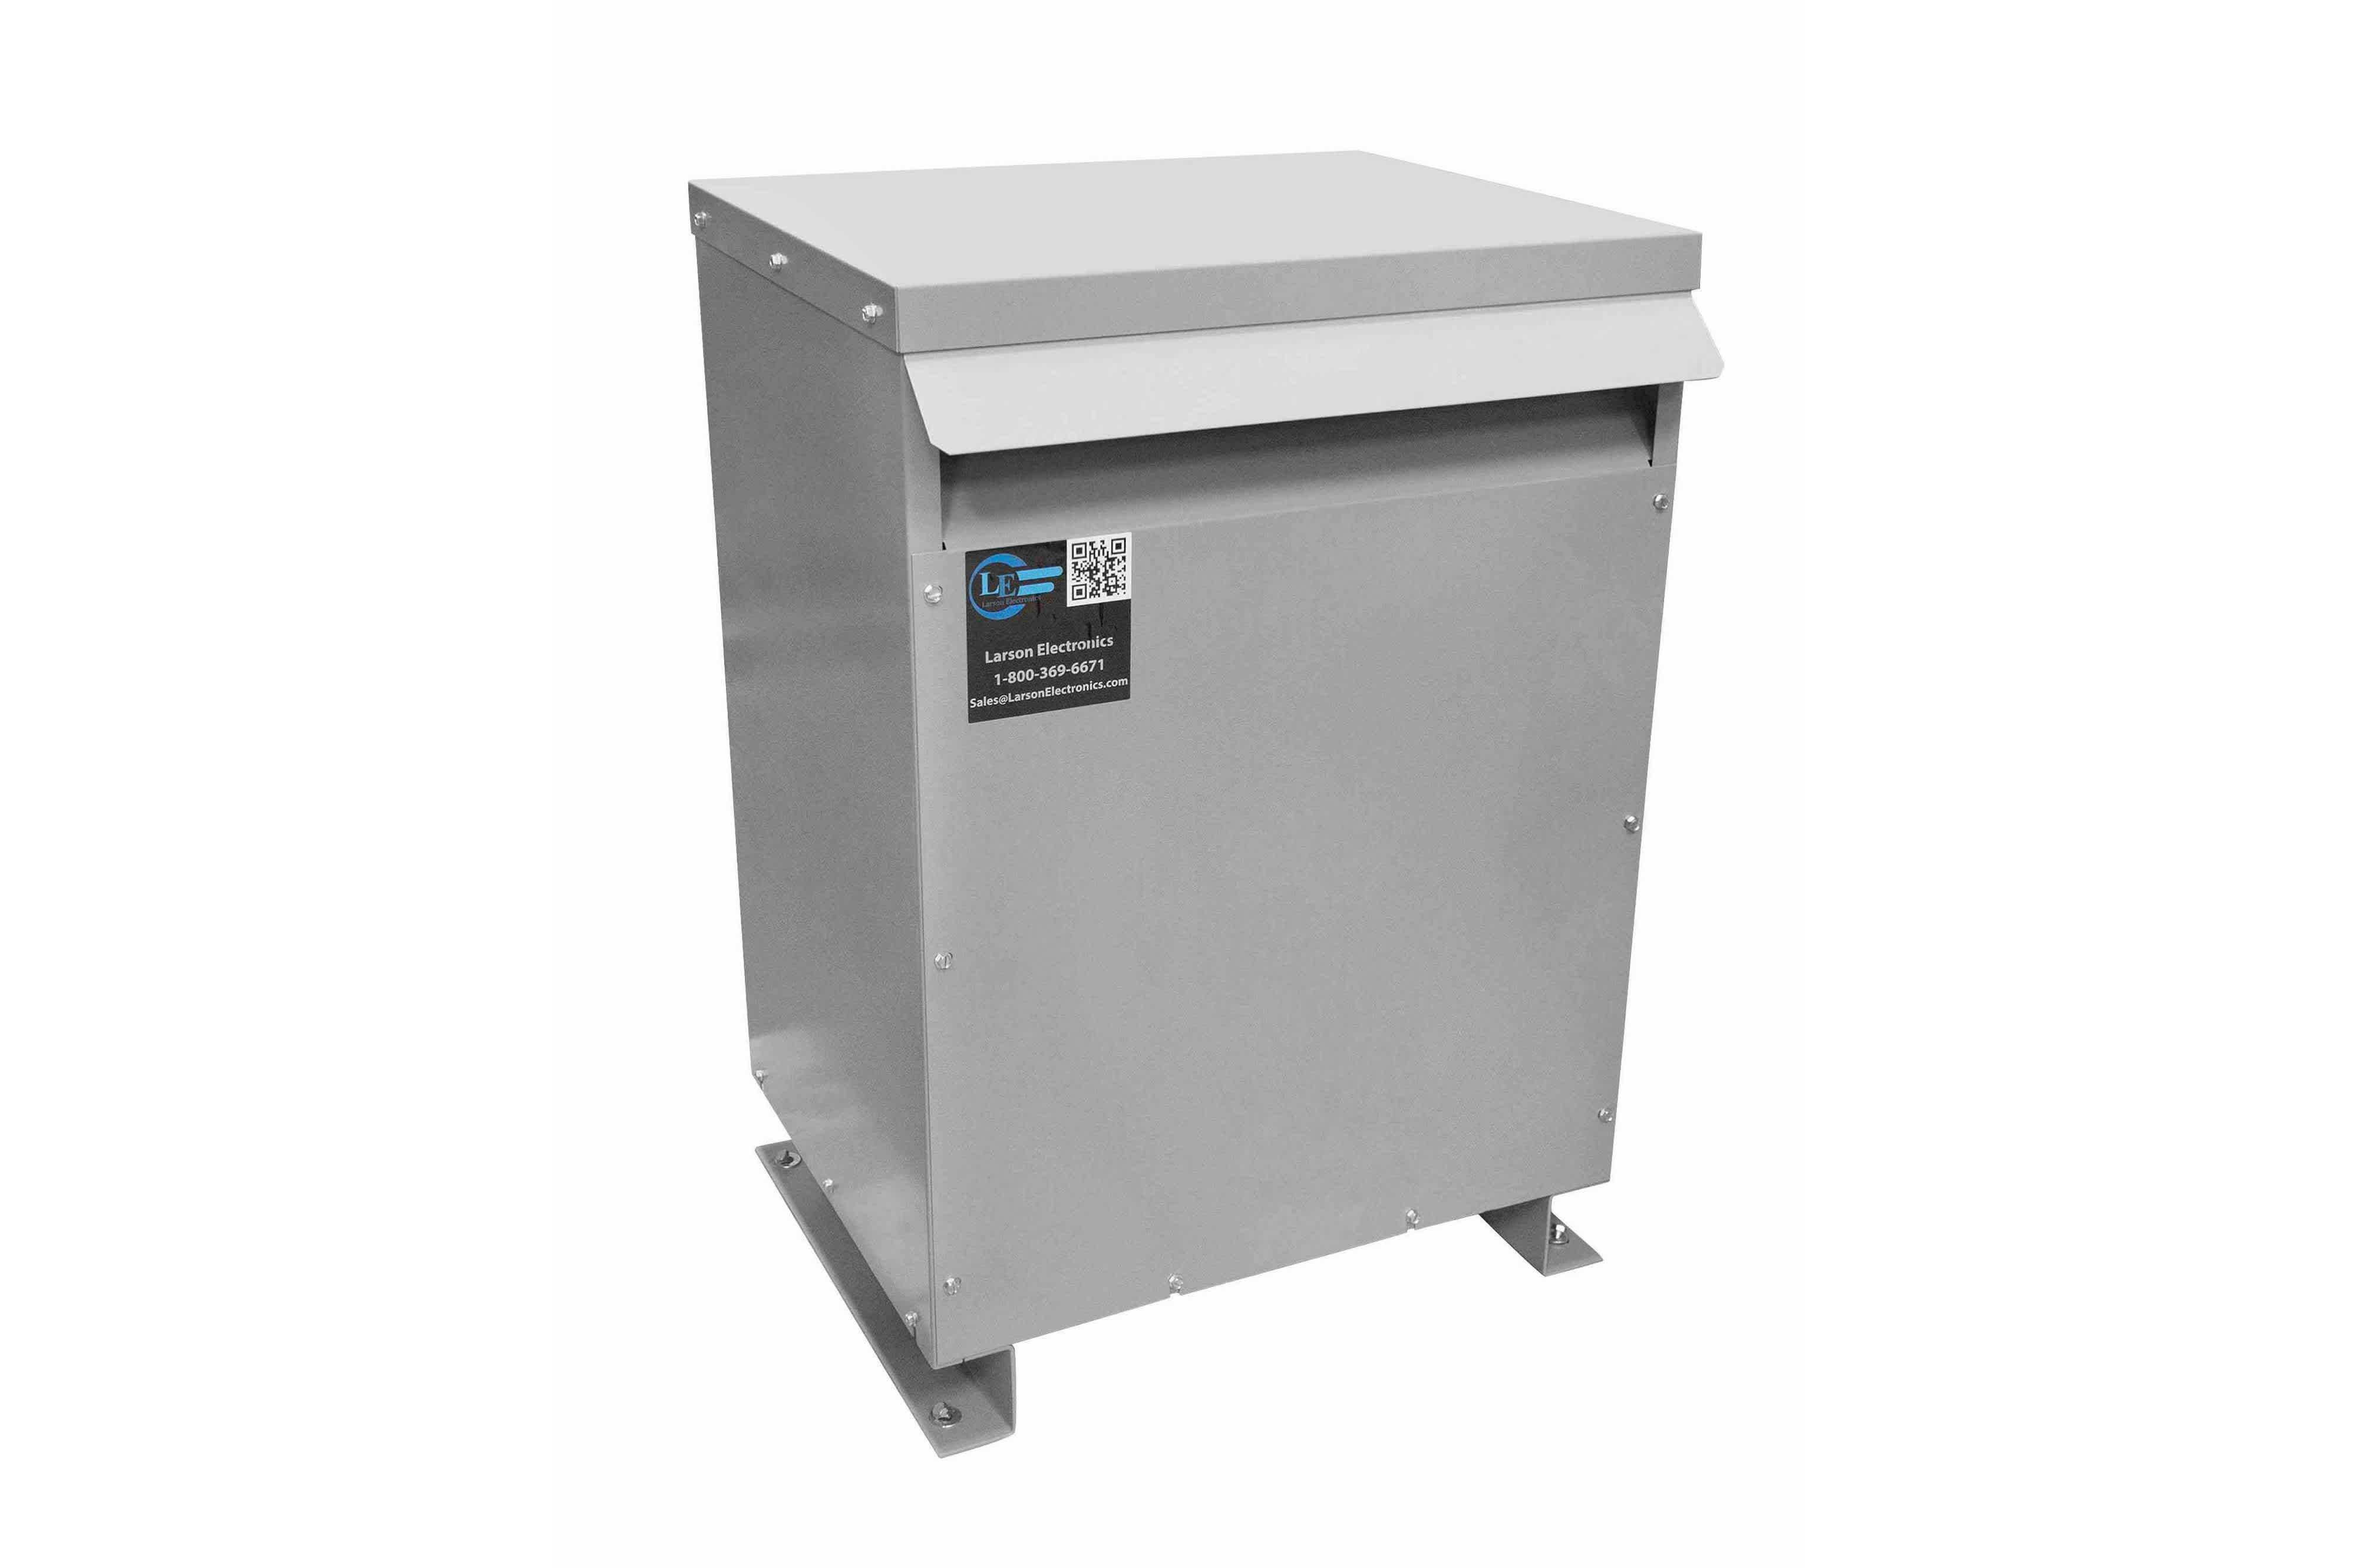 75 kVA 3PH Isolation Transformer, 240V Wye Primary, 415Y/240 Wye-N Secondary, N3R, Ventilated, 60 Hz